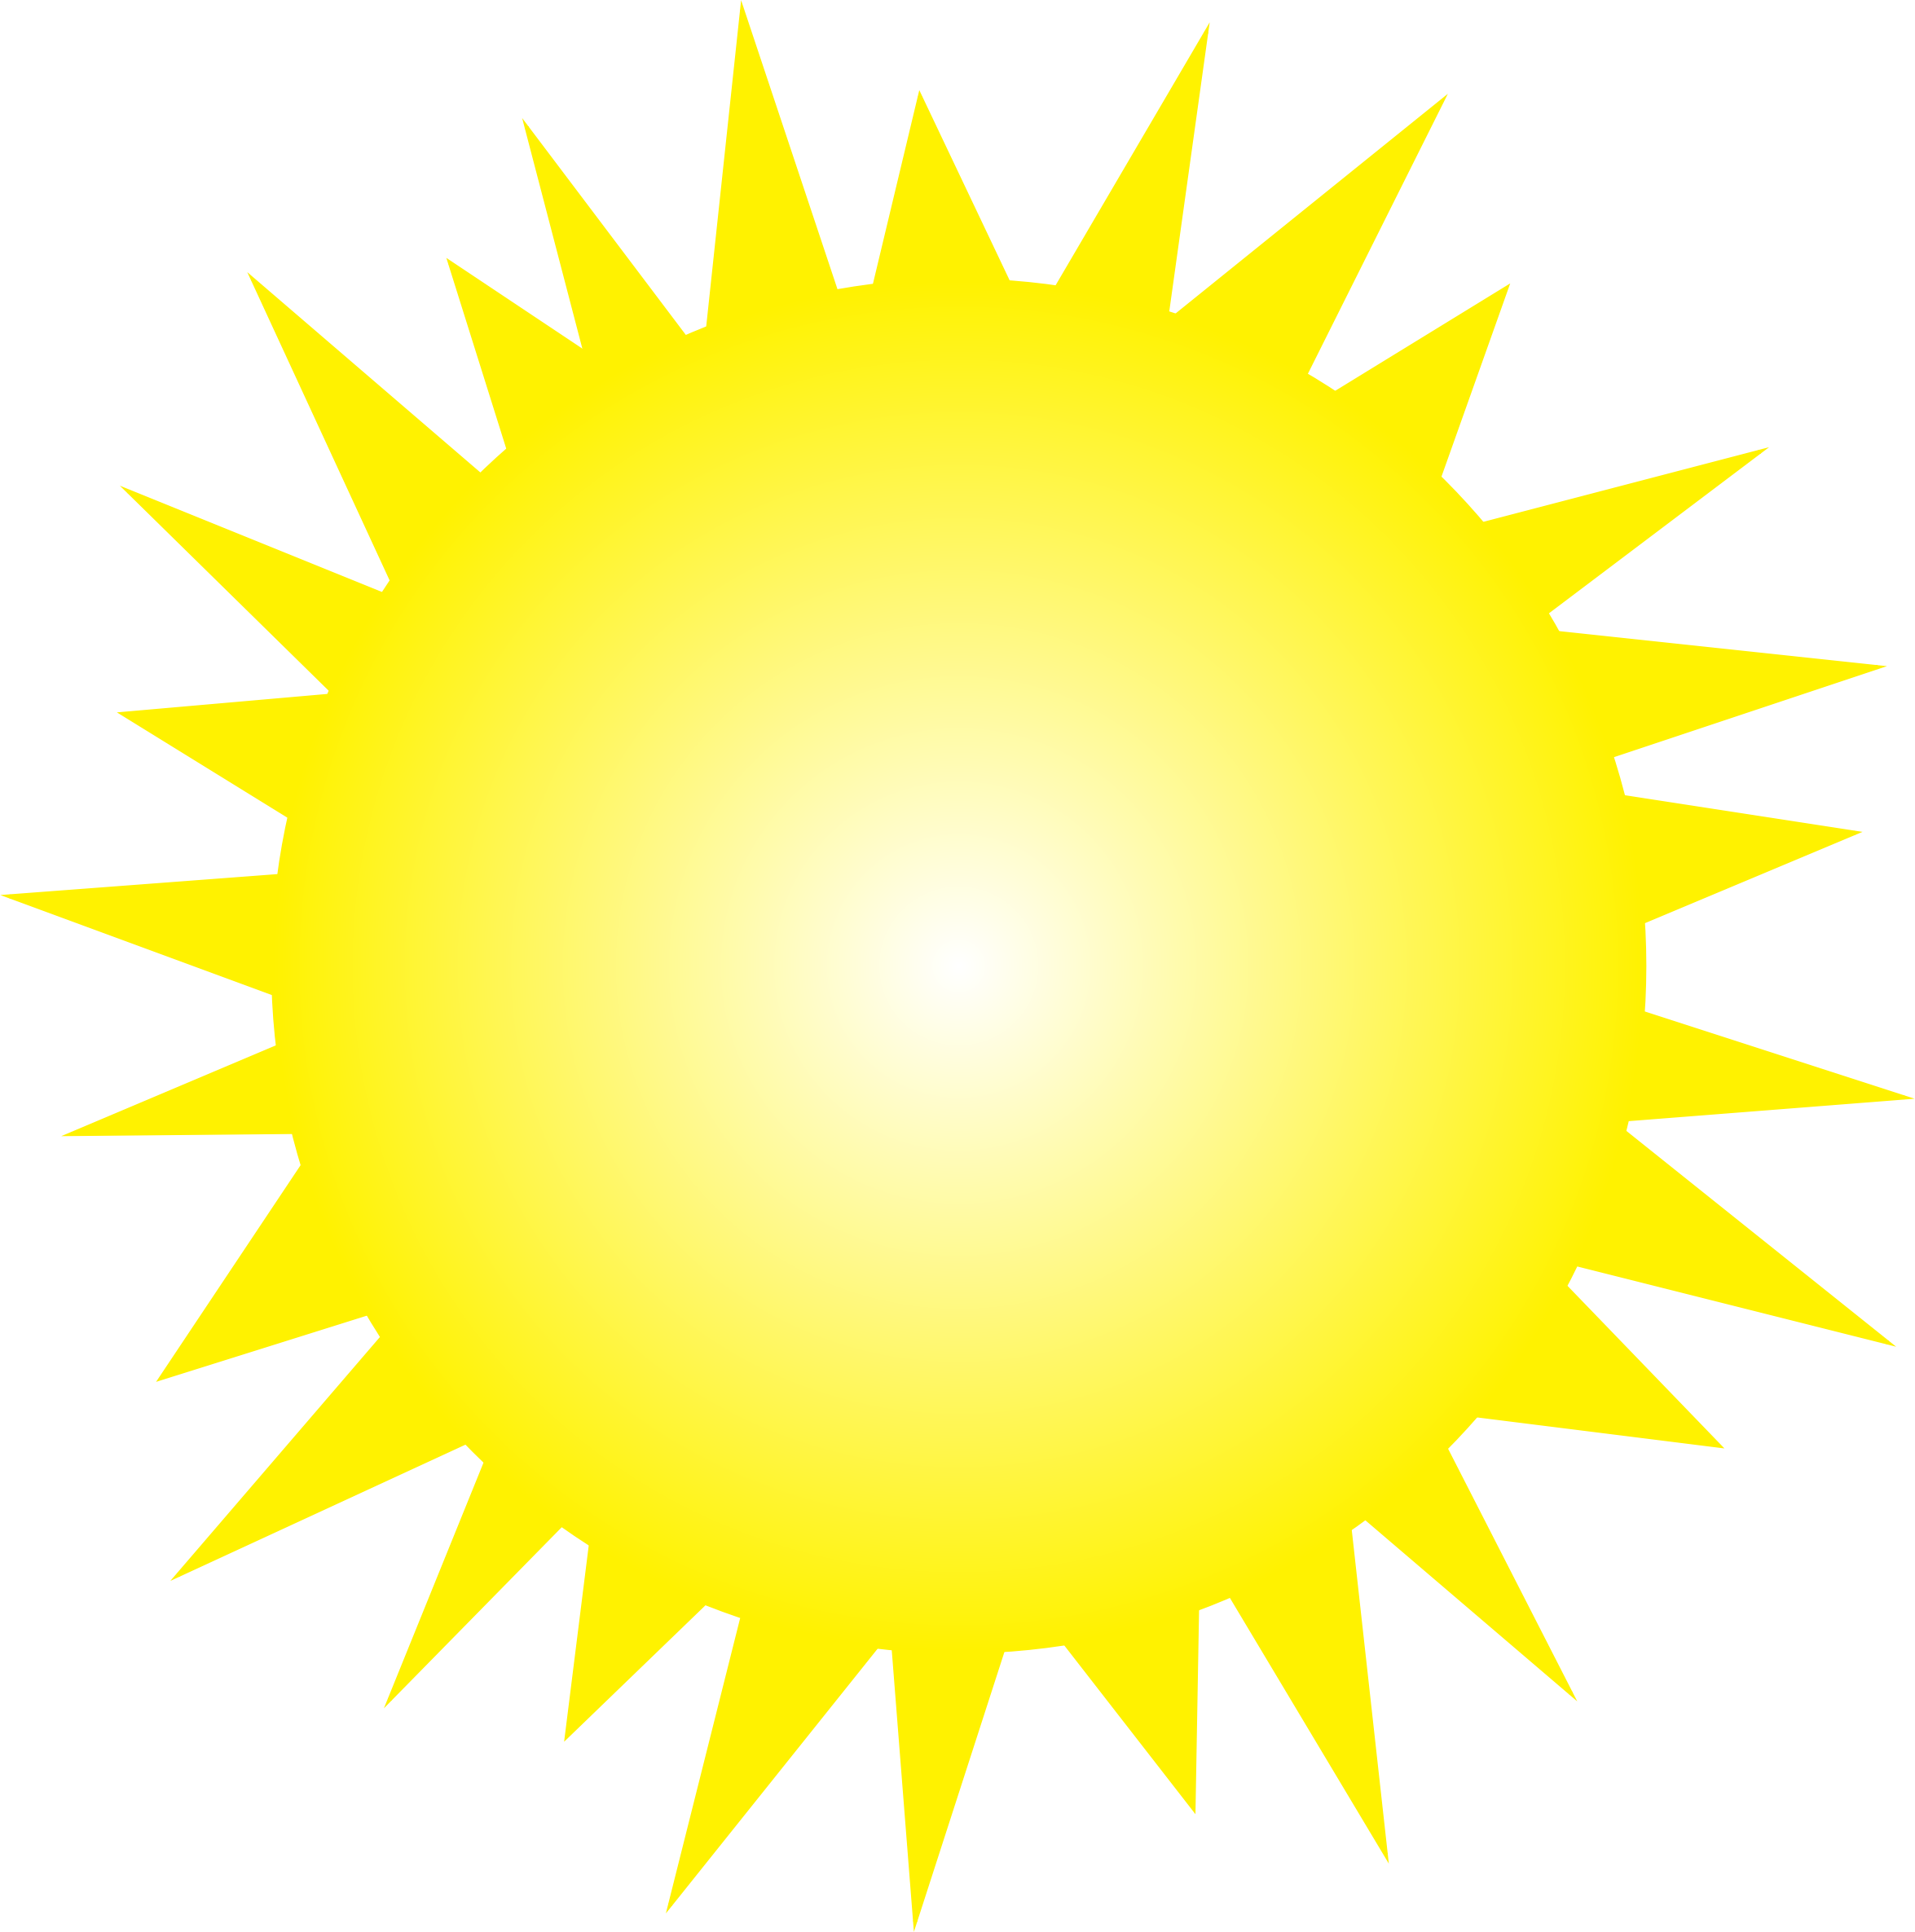 The sun shining clipart png picture freeuse Cartoon Sun Clipart at GetDrawings.com | Free for personal use ... picture freeuse